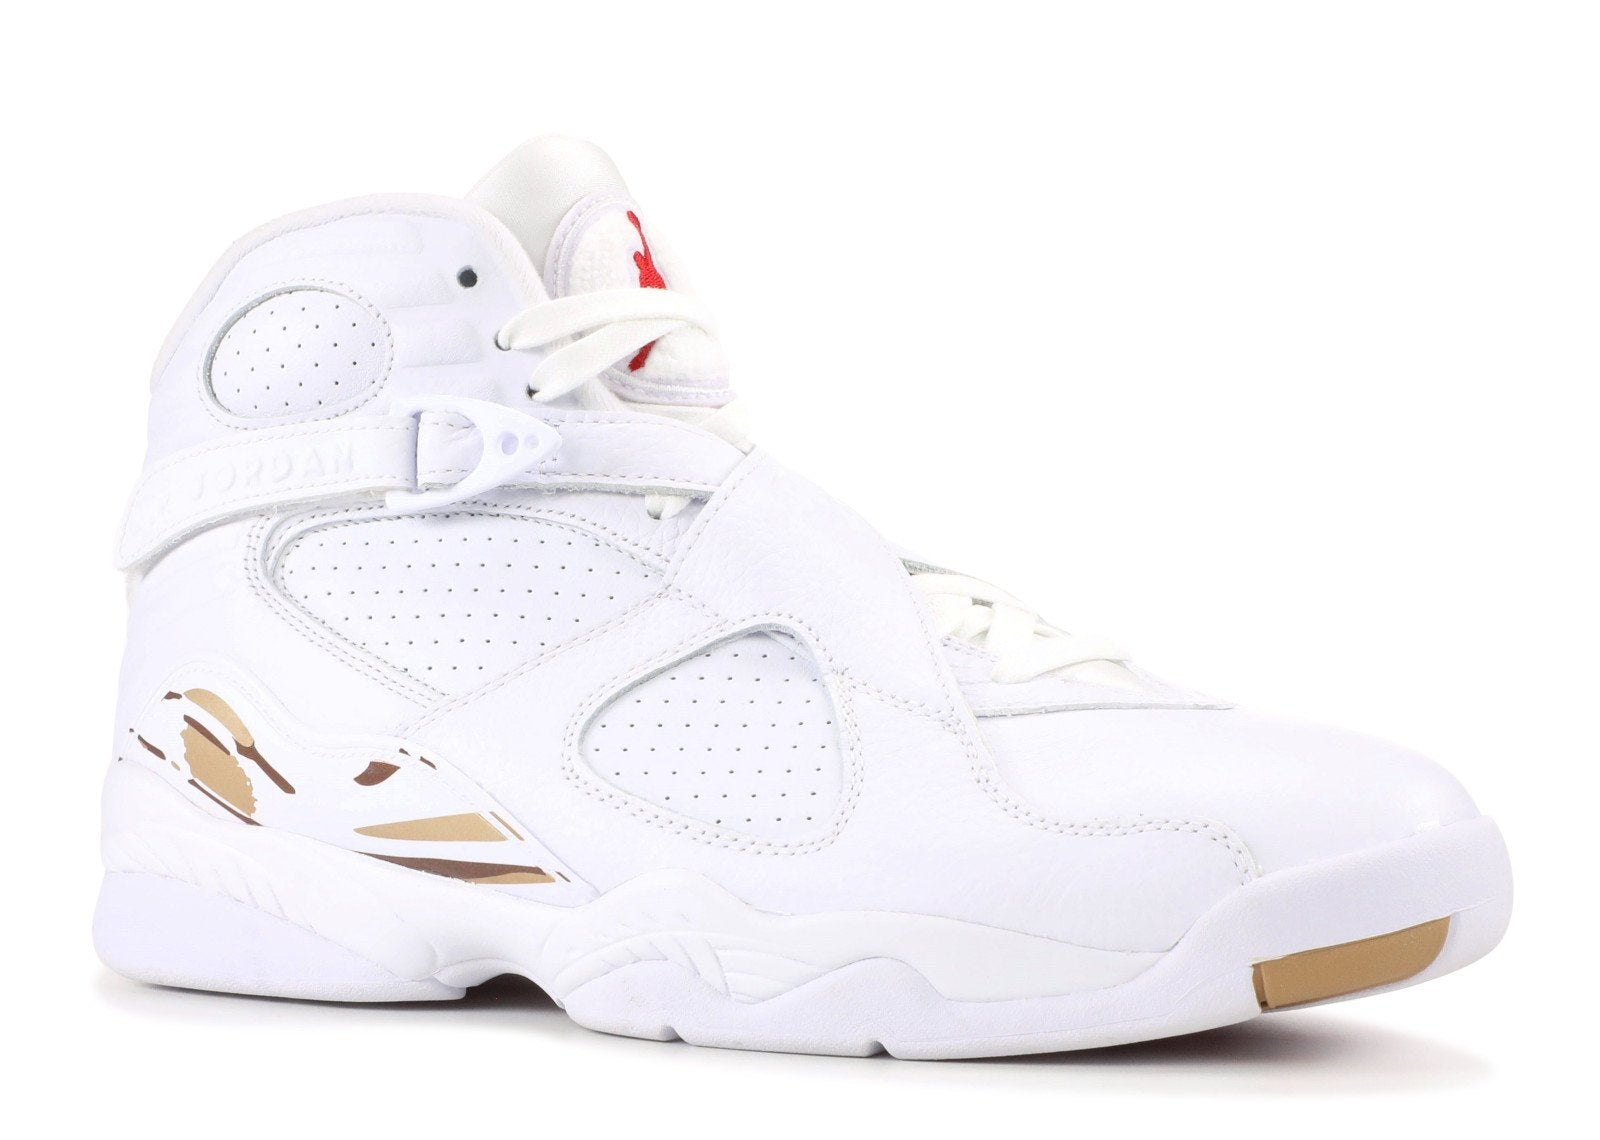 reputable site d04d6 c4f3f AIR JORDAN 8 RETRO OVO